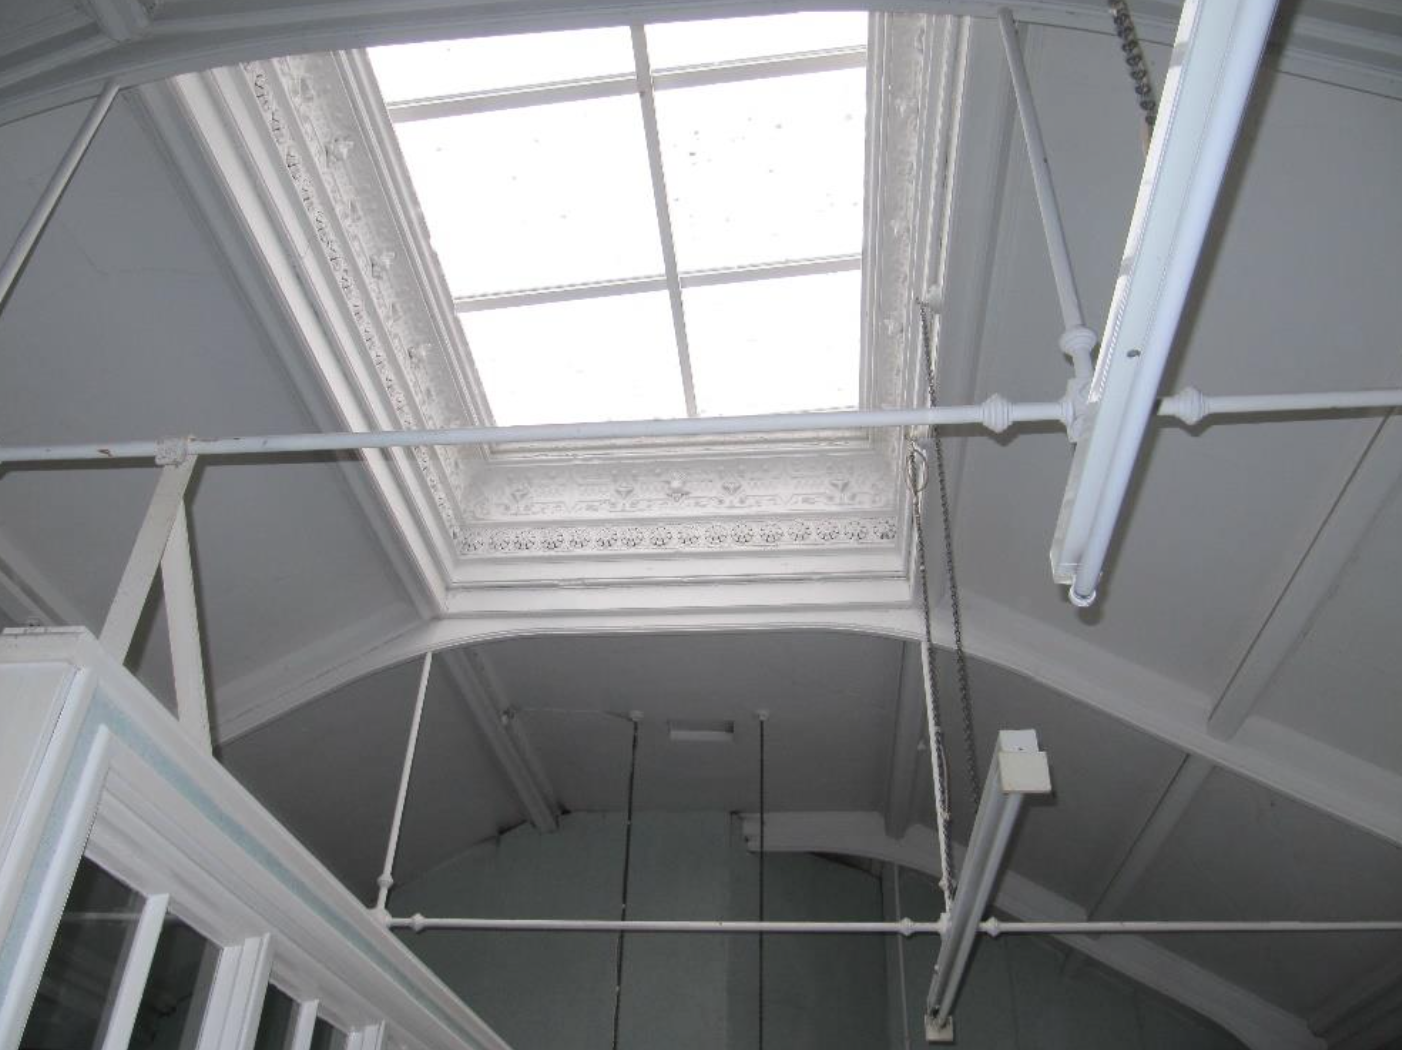 The ceiling space inside the building.